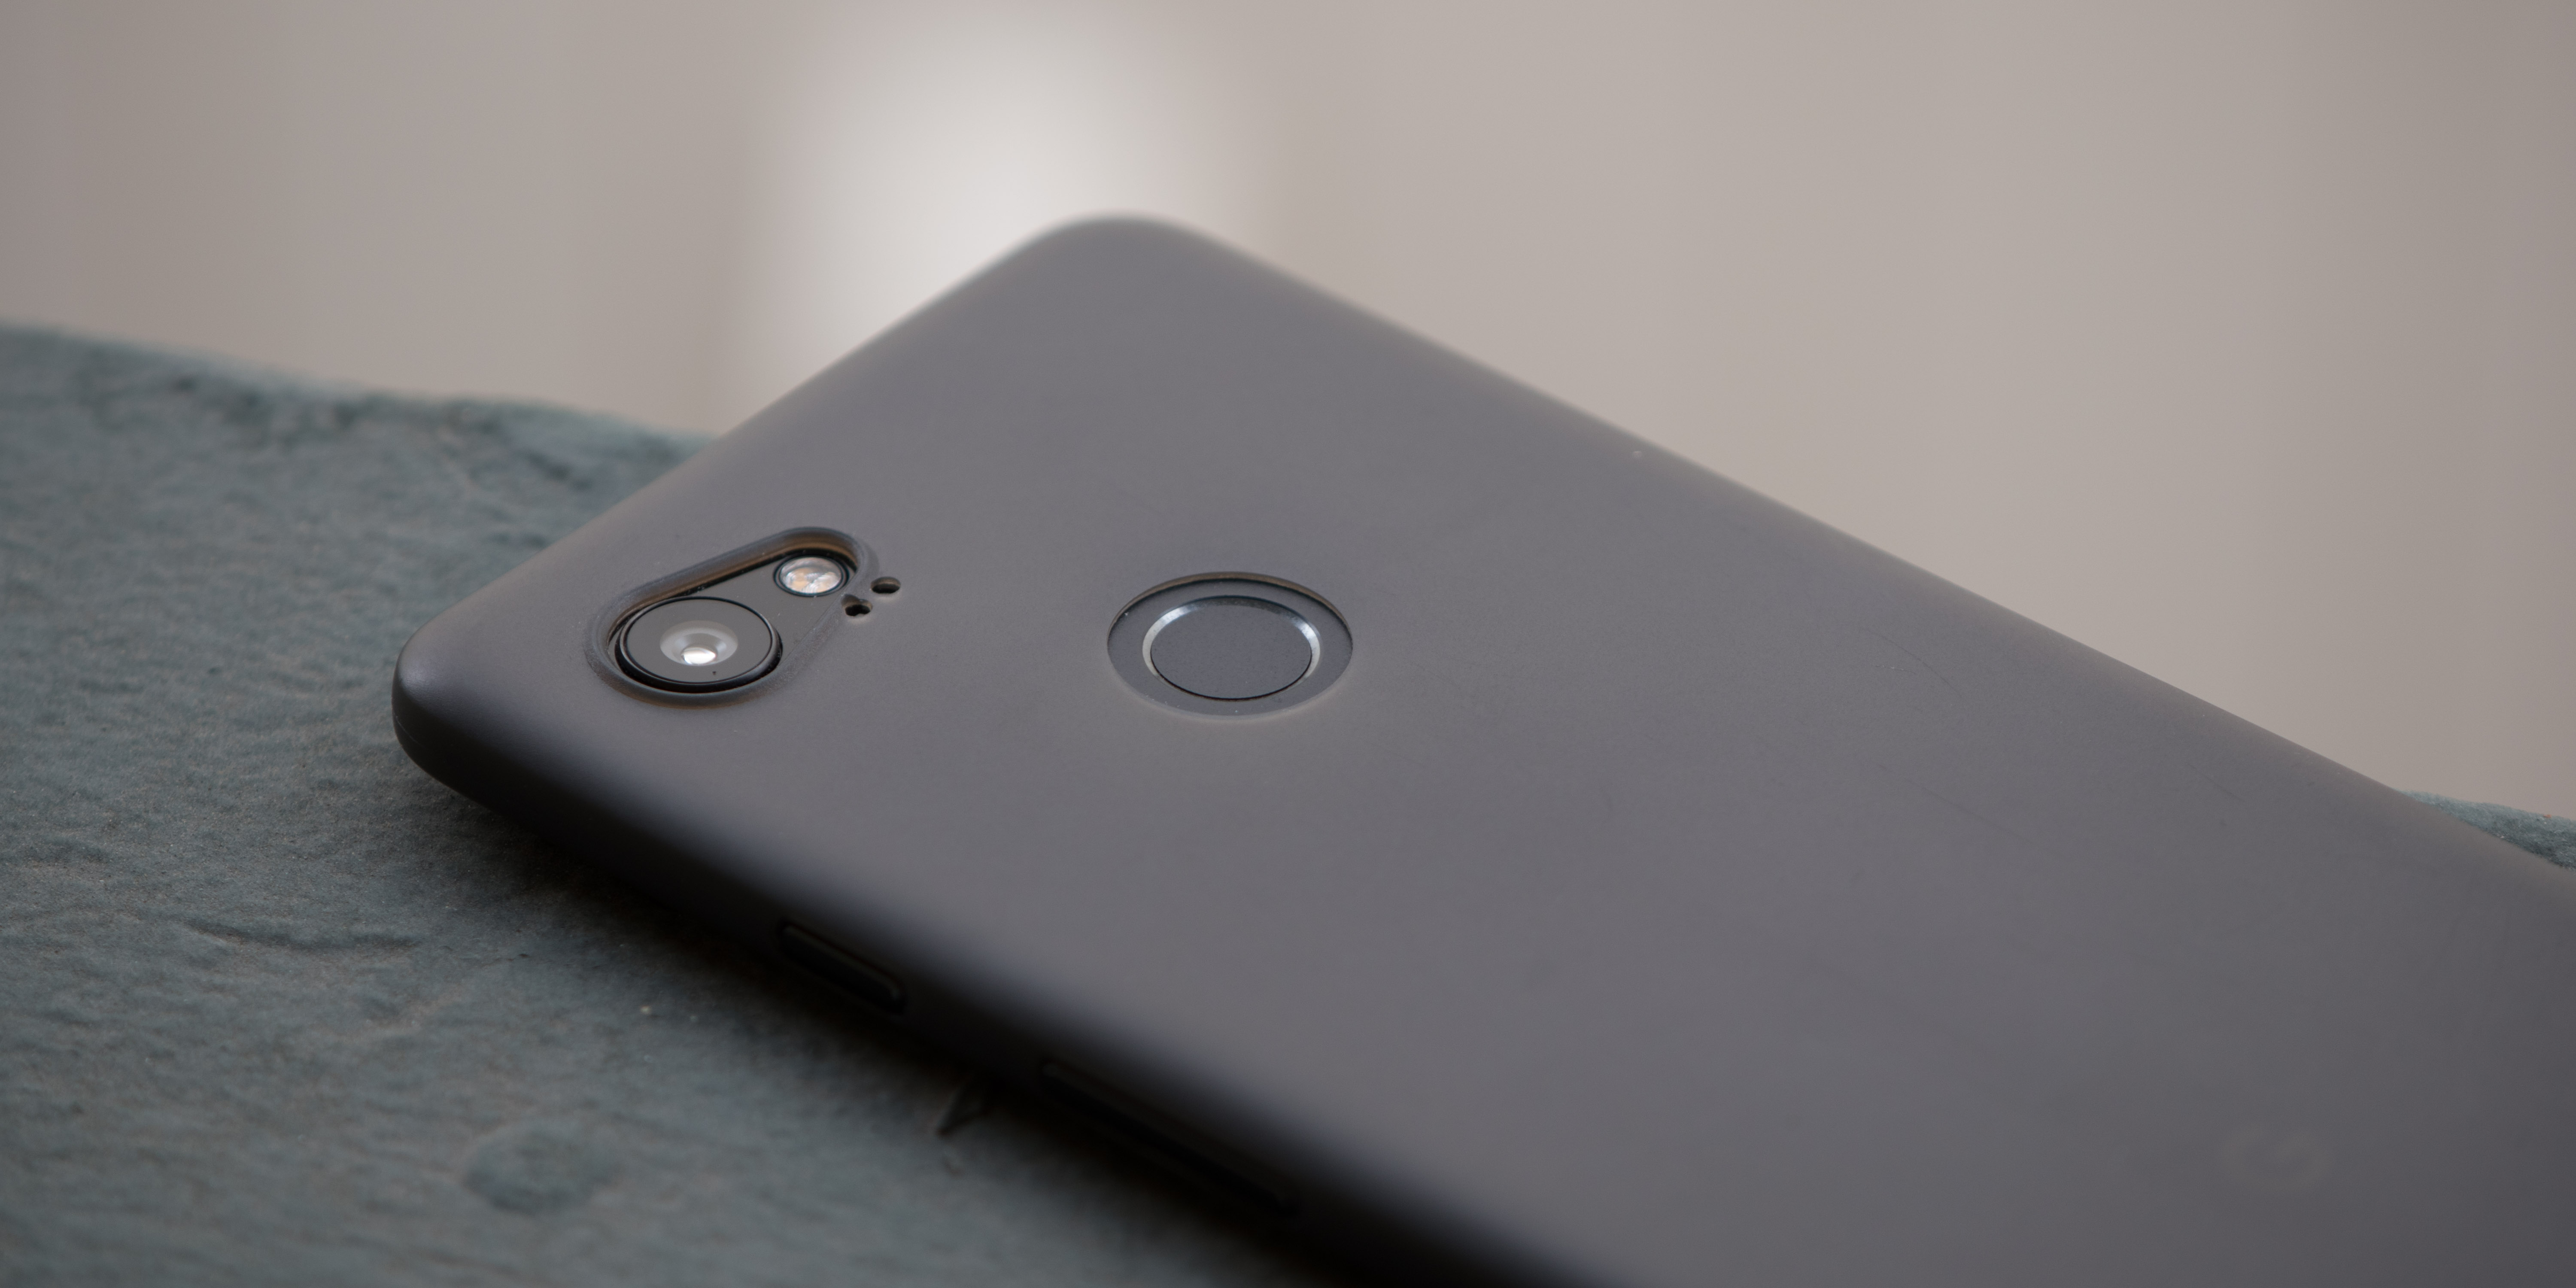 low priced e882b a0f6a Review: Peel's Google Pixel 2 case sold me on super-thin cases ...